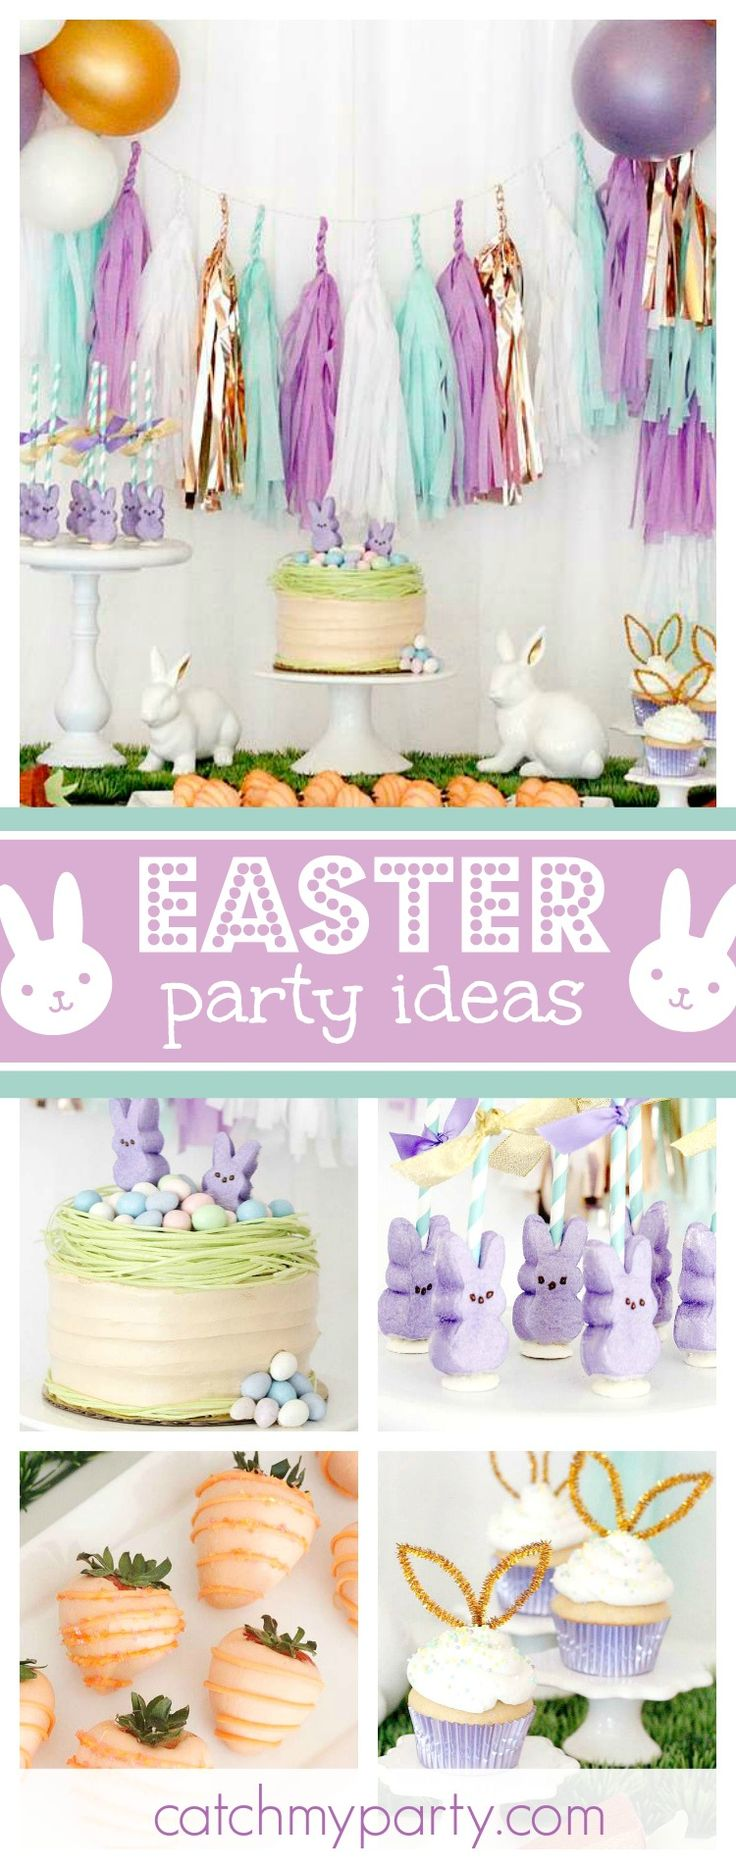 Don't miss this pretty Easter Bunny Bash! The dessert table is amazing!! See more party ideas and share yours at CatchMyParty.com